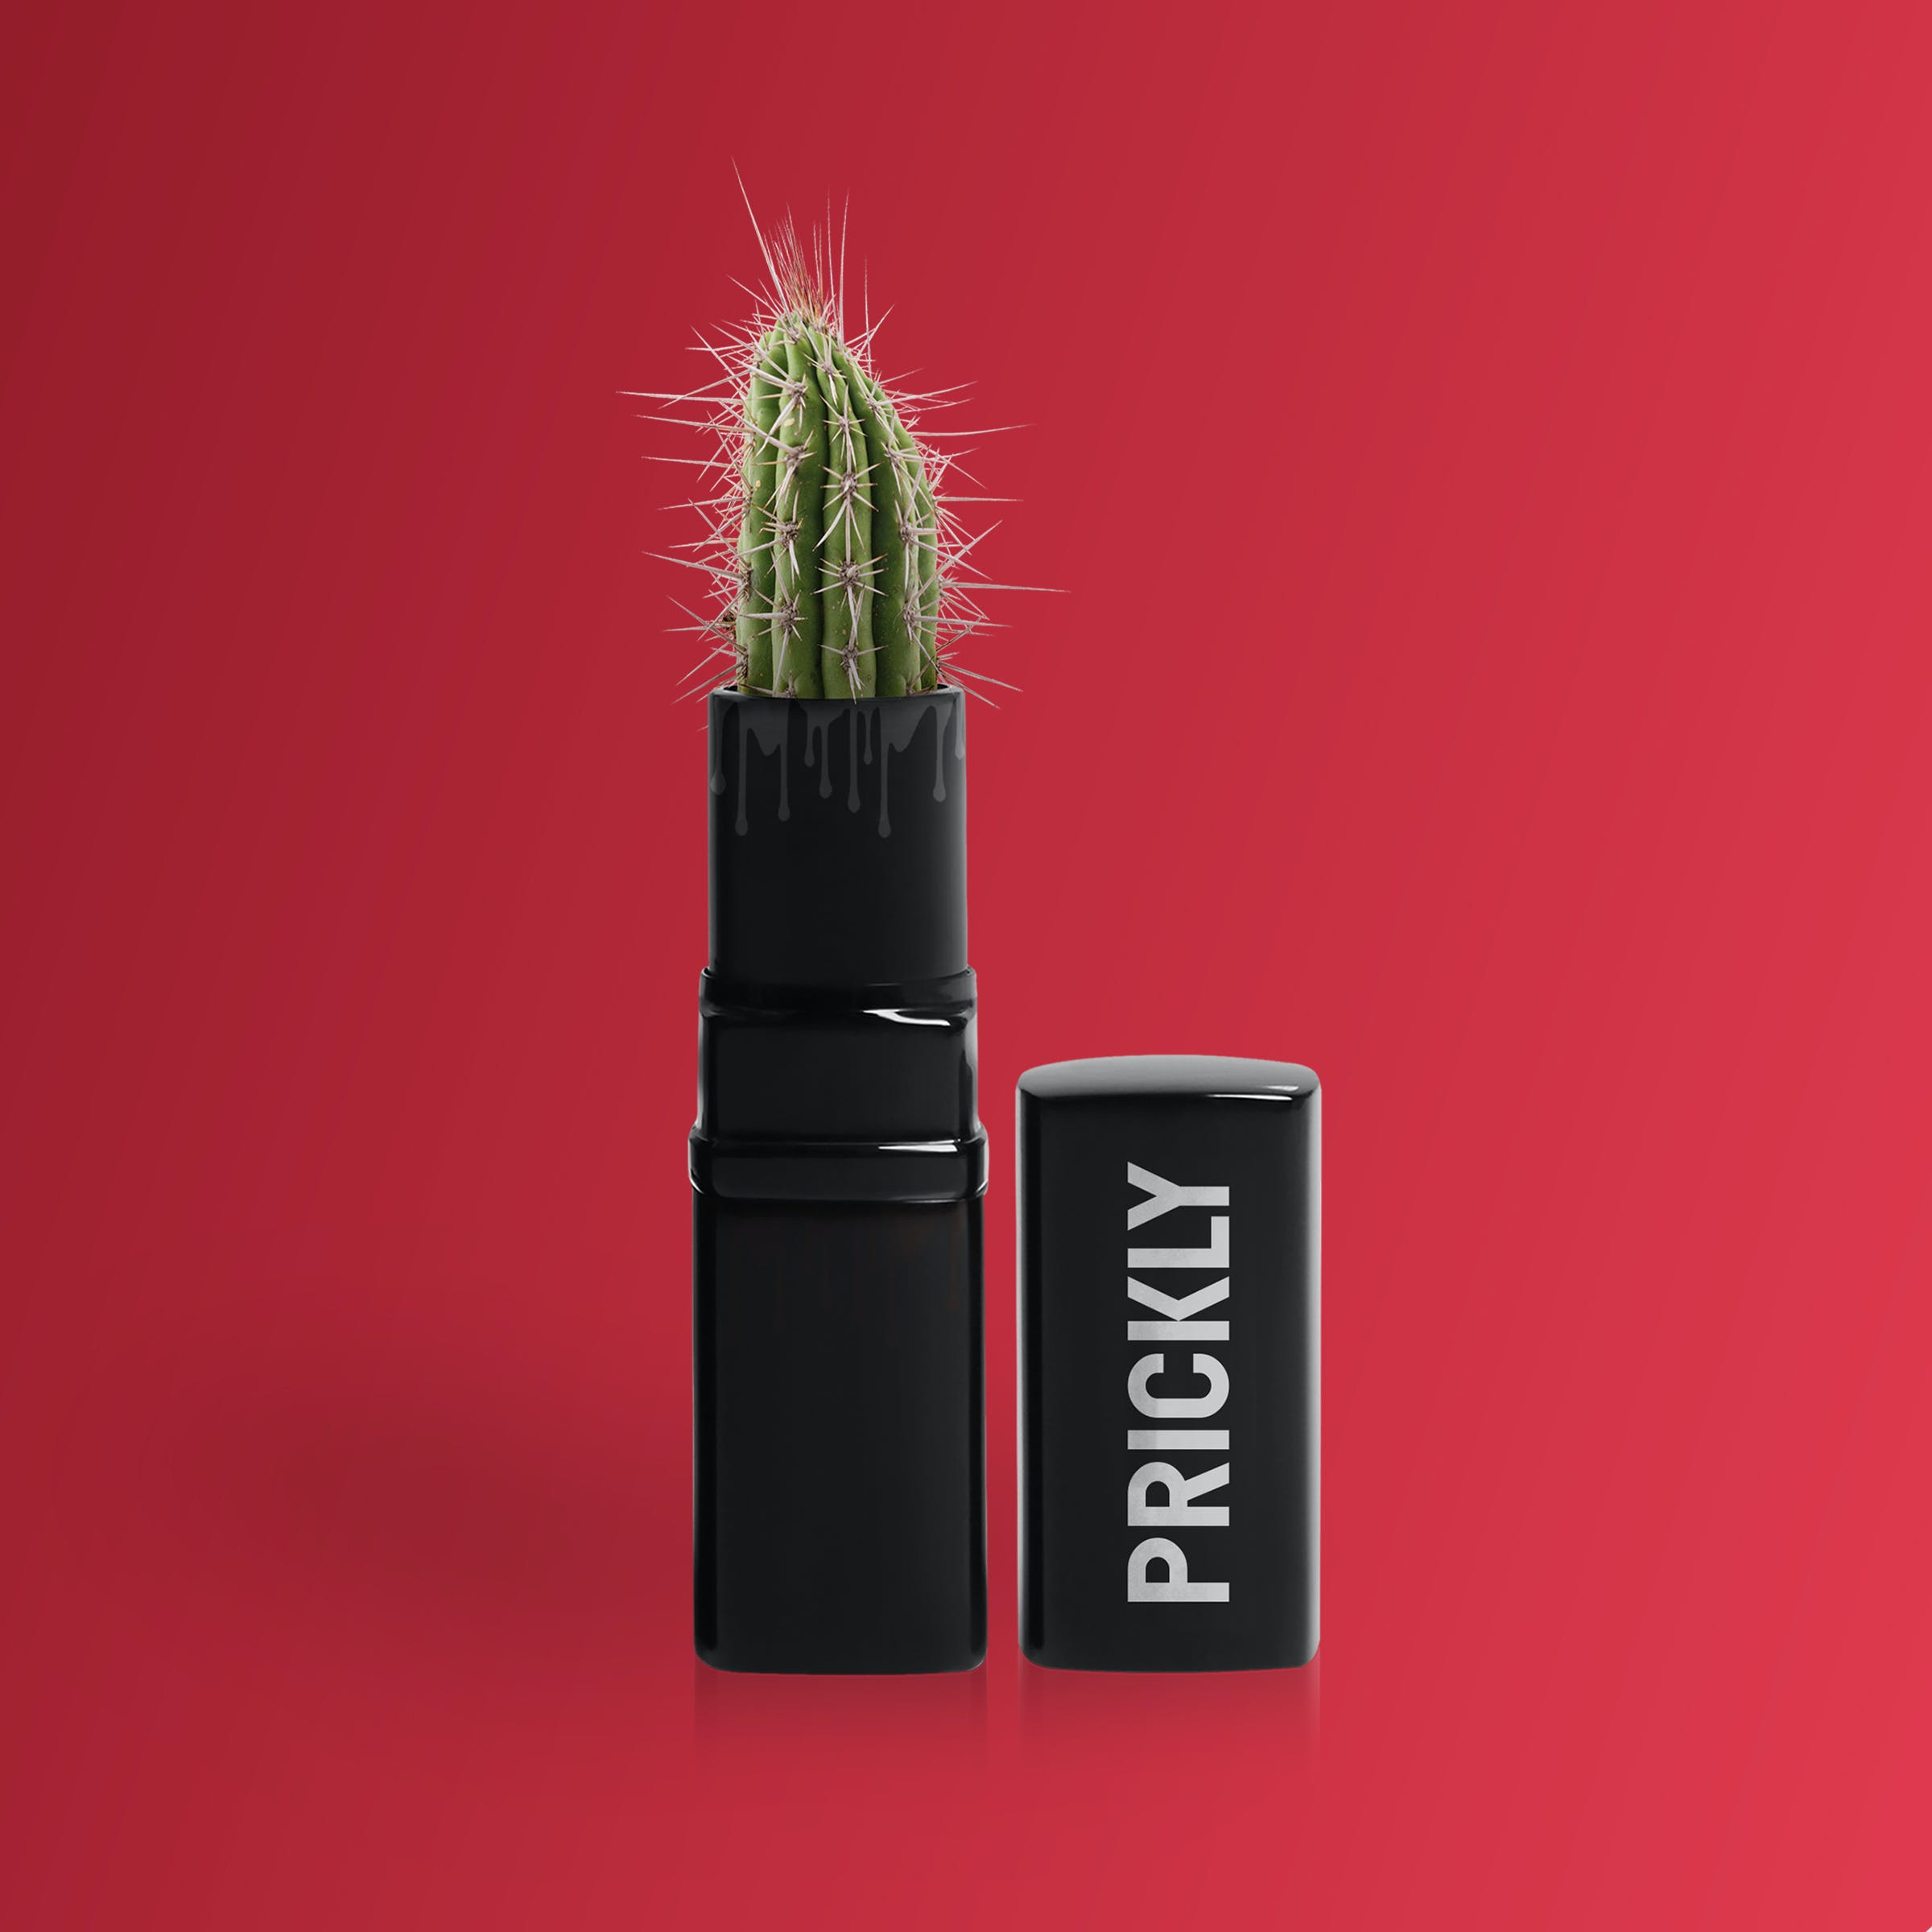 Green Prickly Lipstick With Cactus Plant